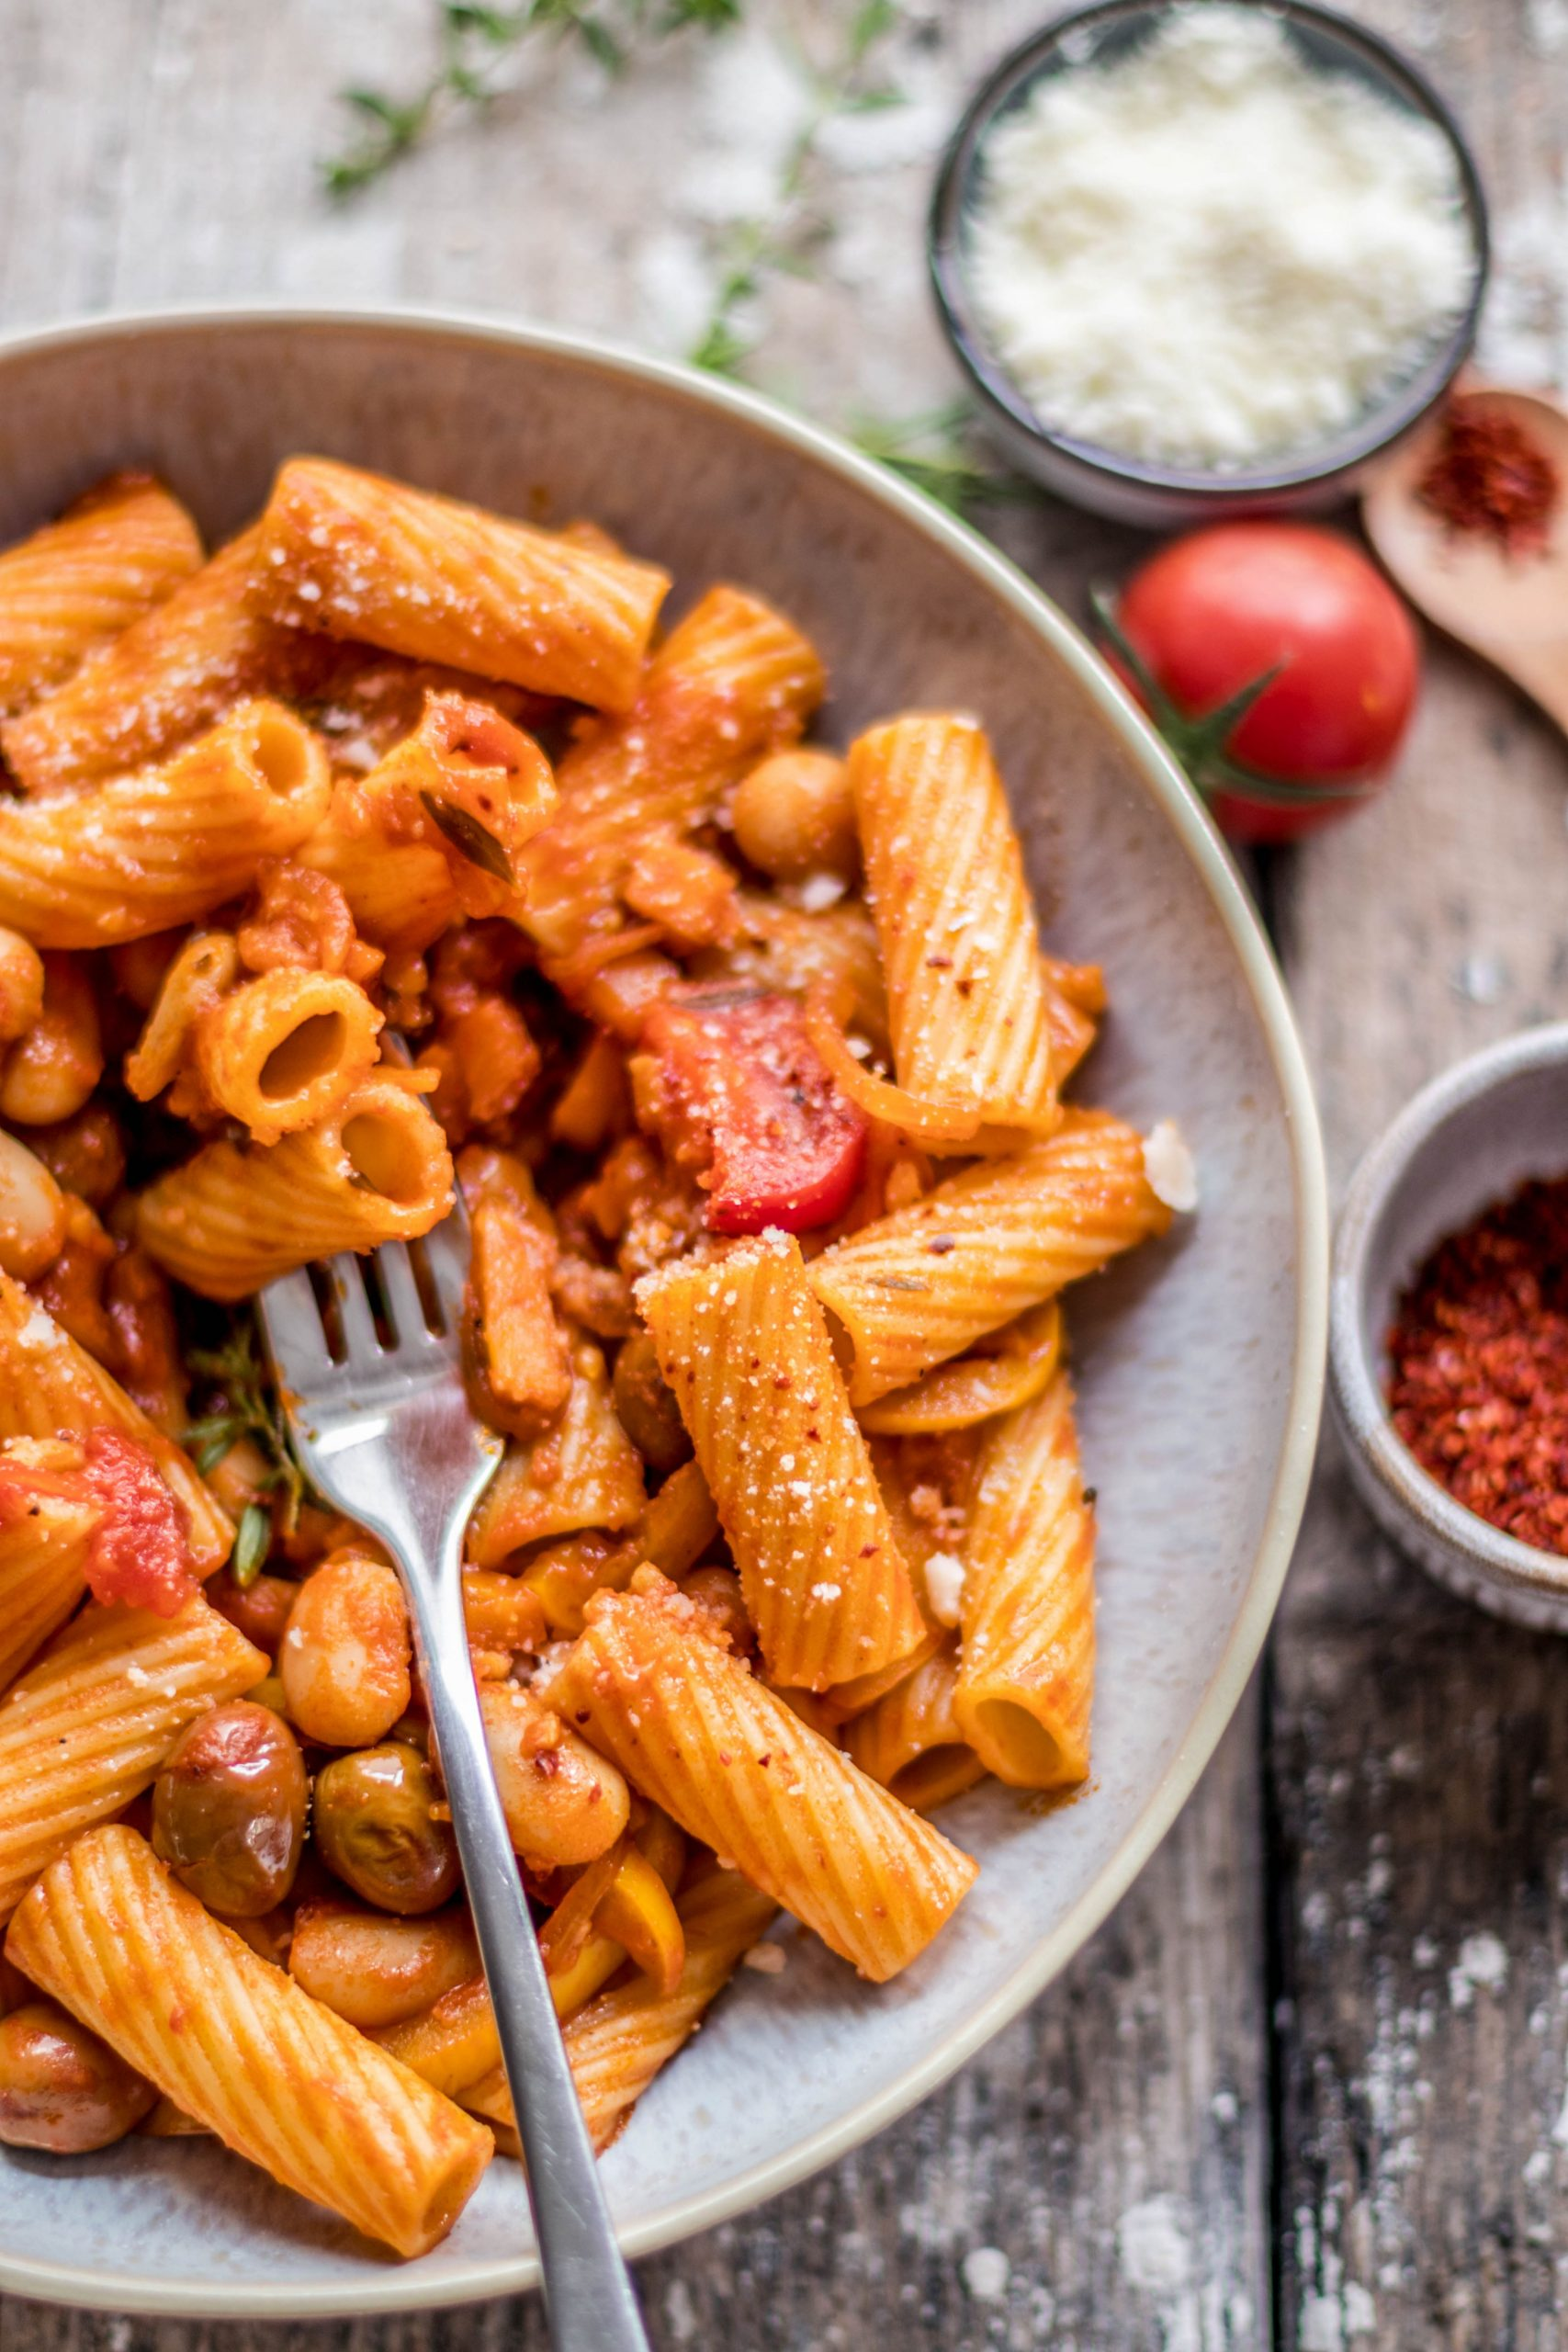 Tomato pepper pasta sauce - Recipes Pasta Sauces Without Tomatoes